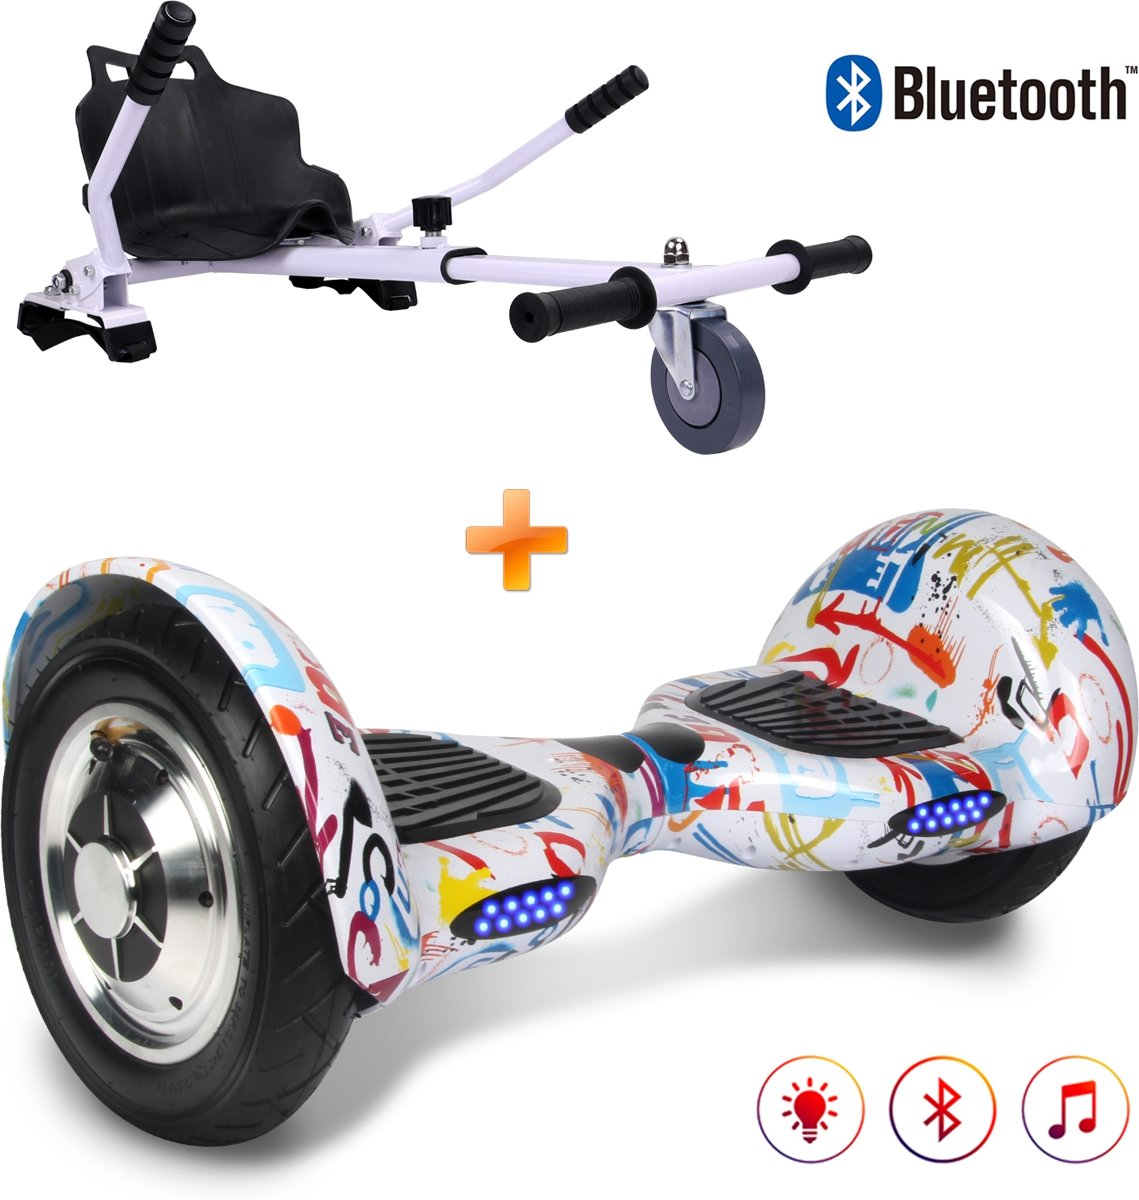 COOL & FUN Hoverboard Bluetooth Off-Road, Elektrische Scooter Zelfbalanserende, gyropod verbonden 10 inch Graffiti design + Hoverkart Wit